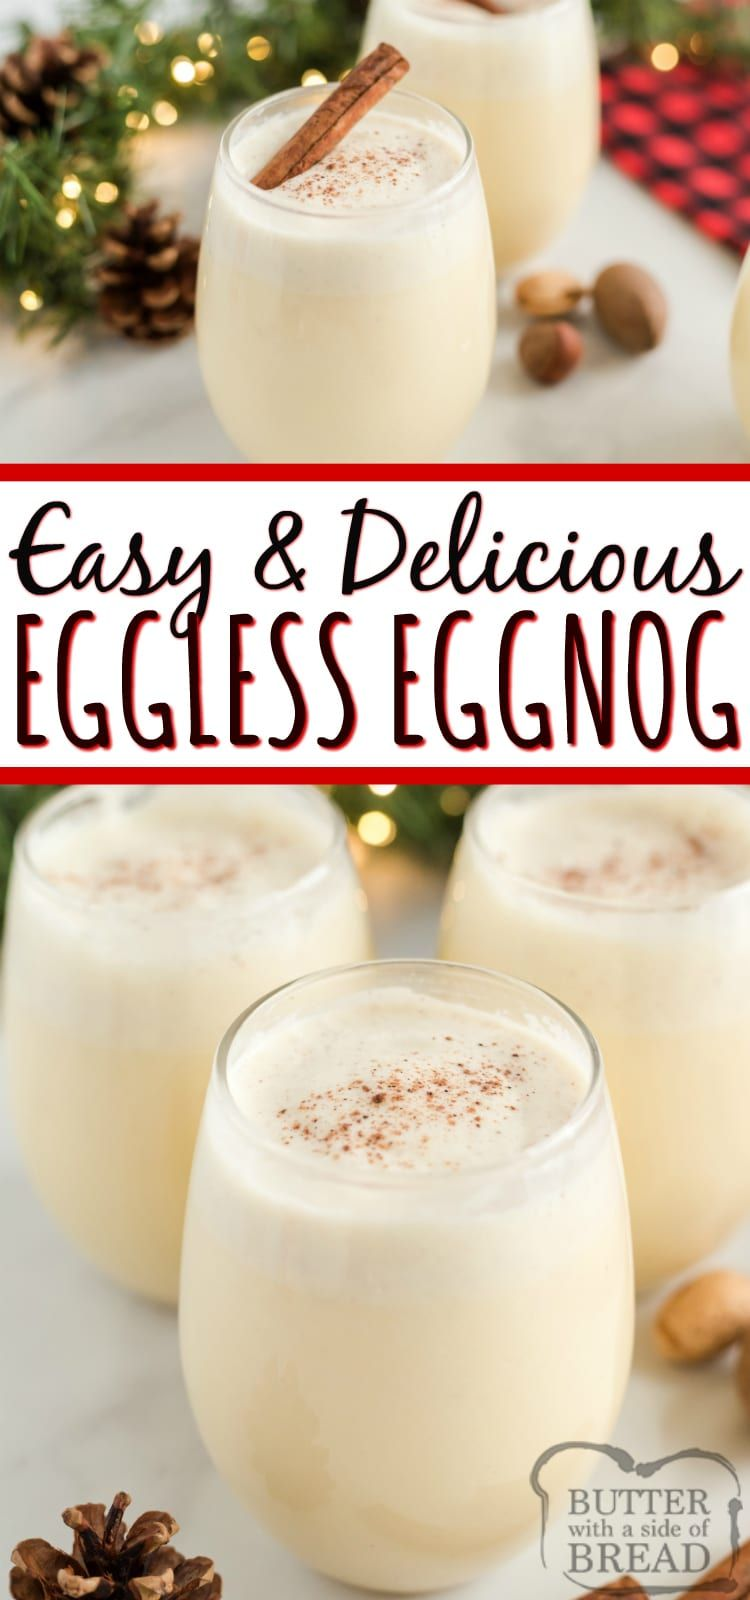 Easy Eggless Eggnog recipe can be made quickly in a ...